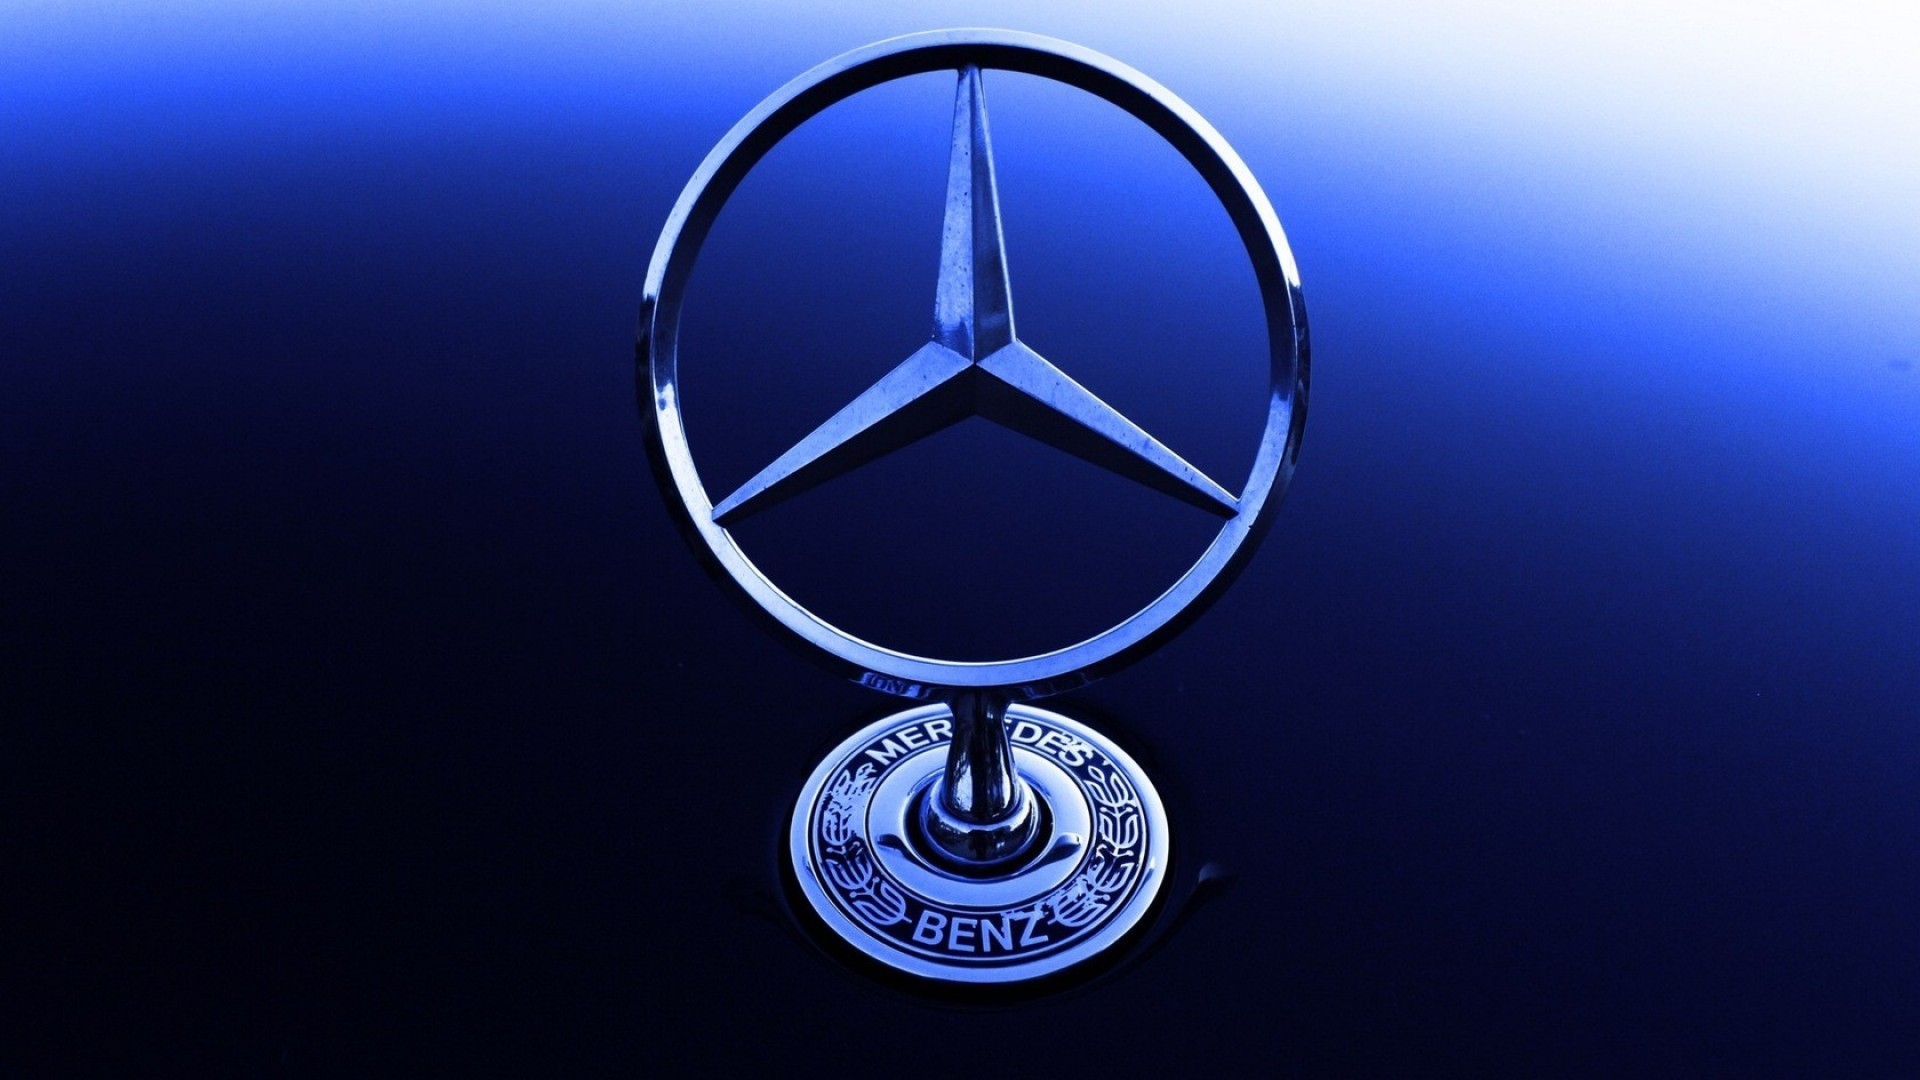 Mercedes benz logo wallpapers pictures images for Mercedes benz insignia